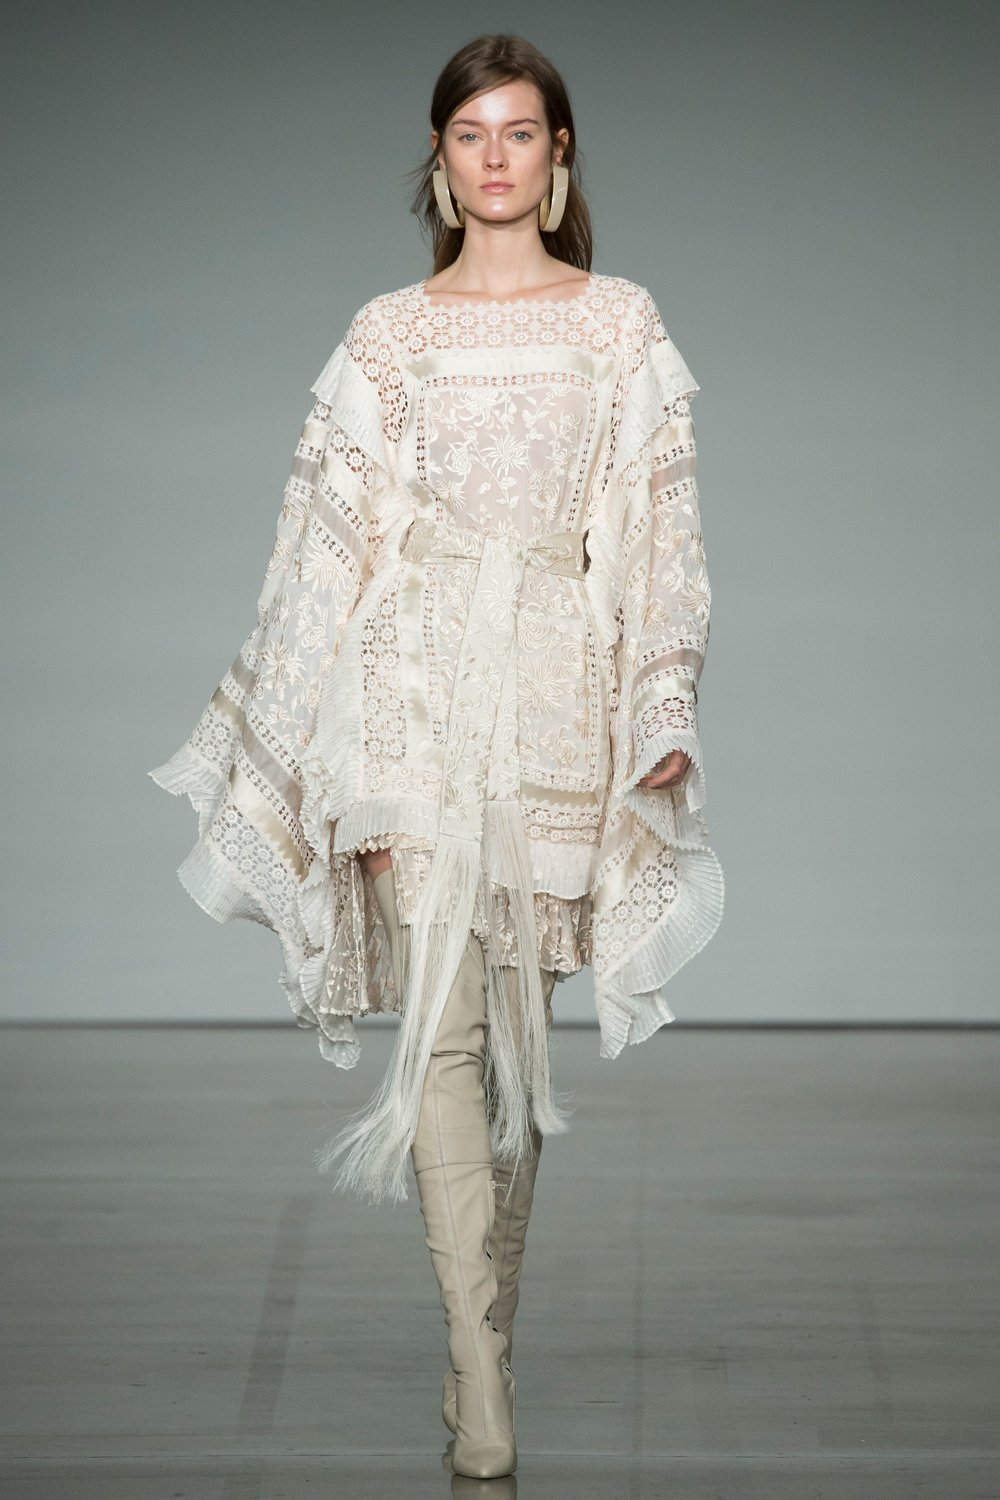 ZIMMERMANN -  how fitting to finish with this piece of boho loveliness - fringe, lace, embroidery, pleats and those boots